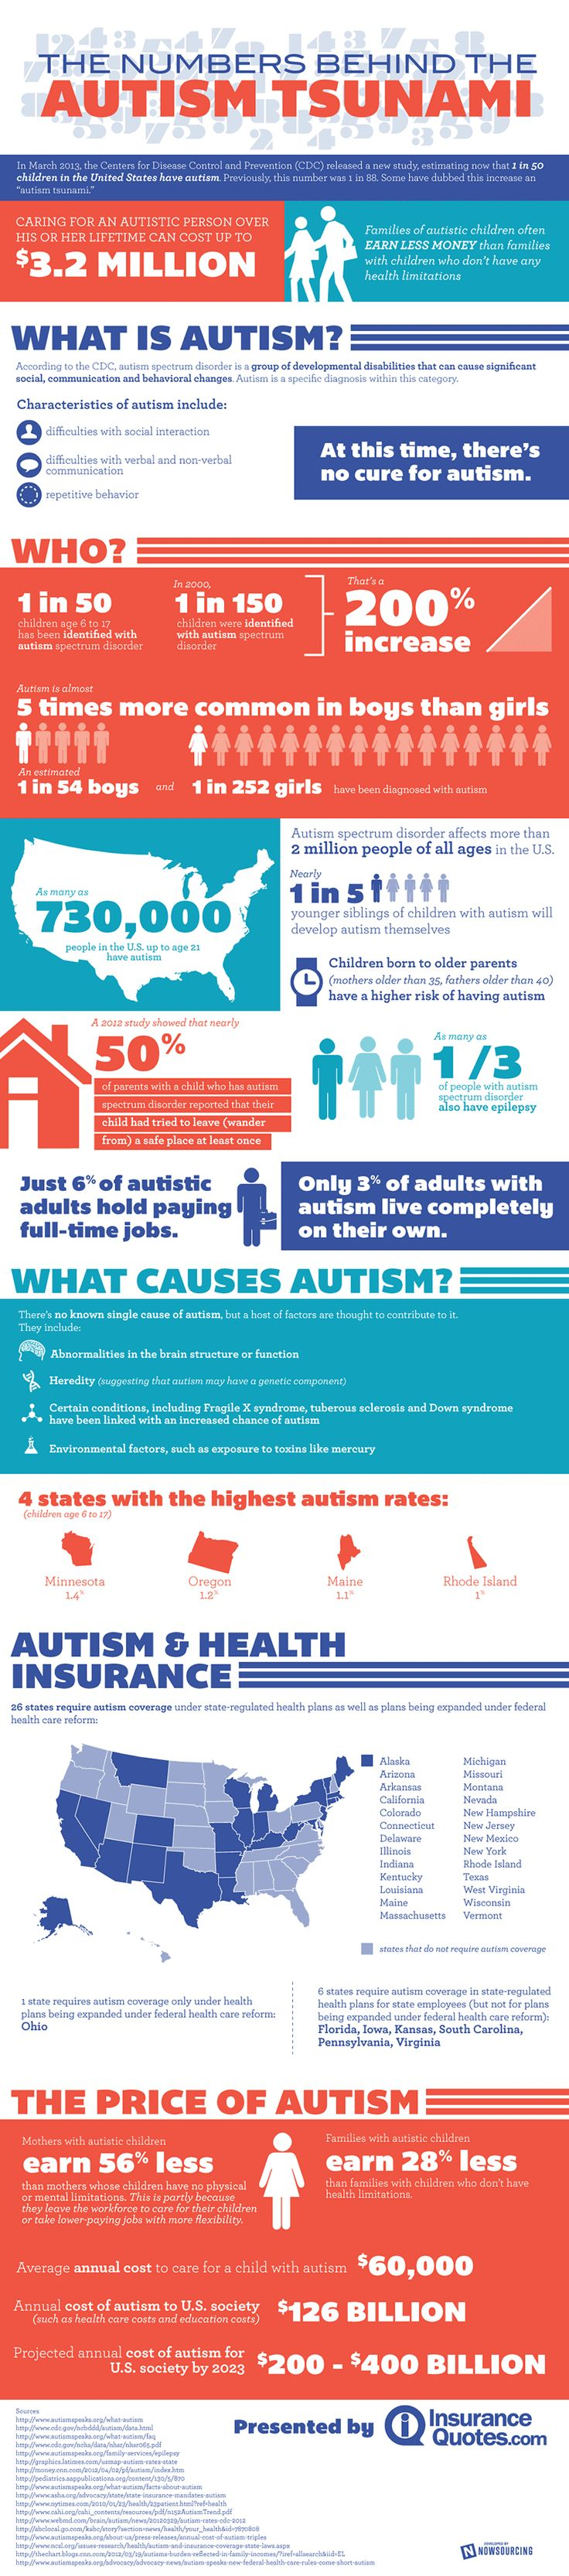 106 best All About Autism images on Pinterest